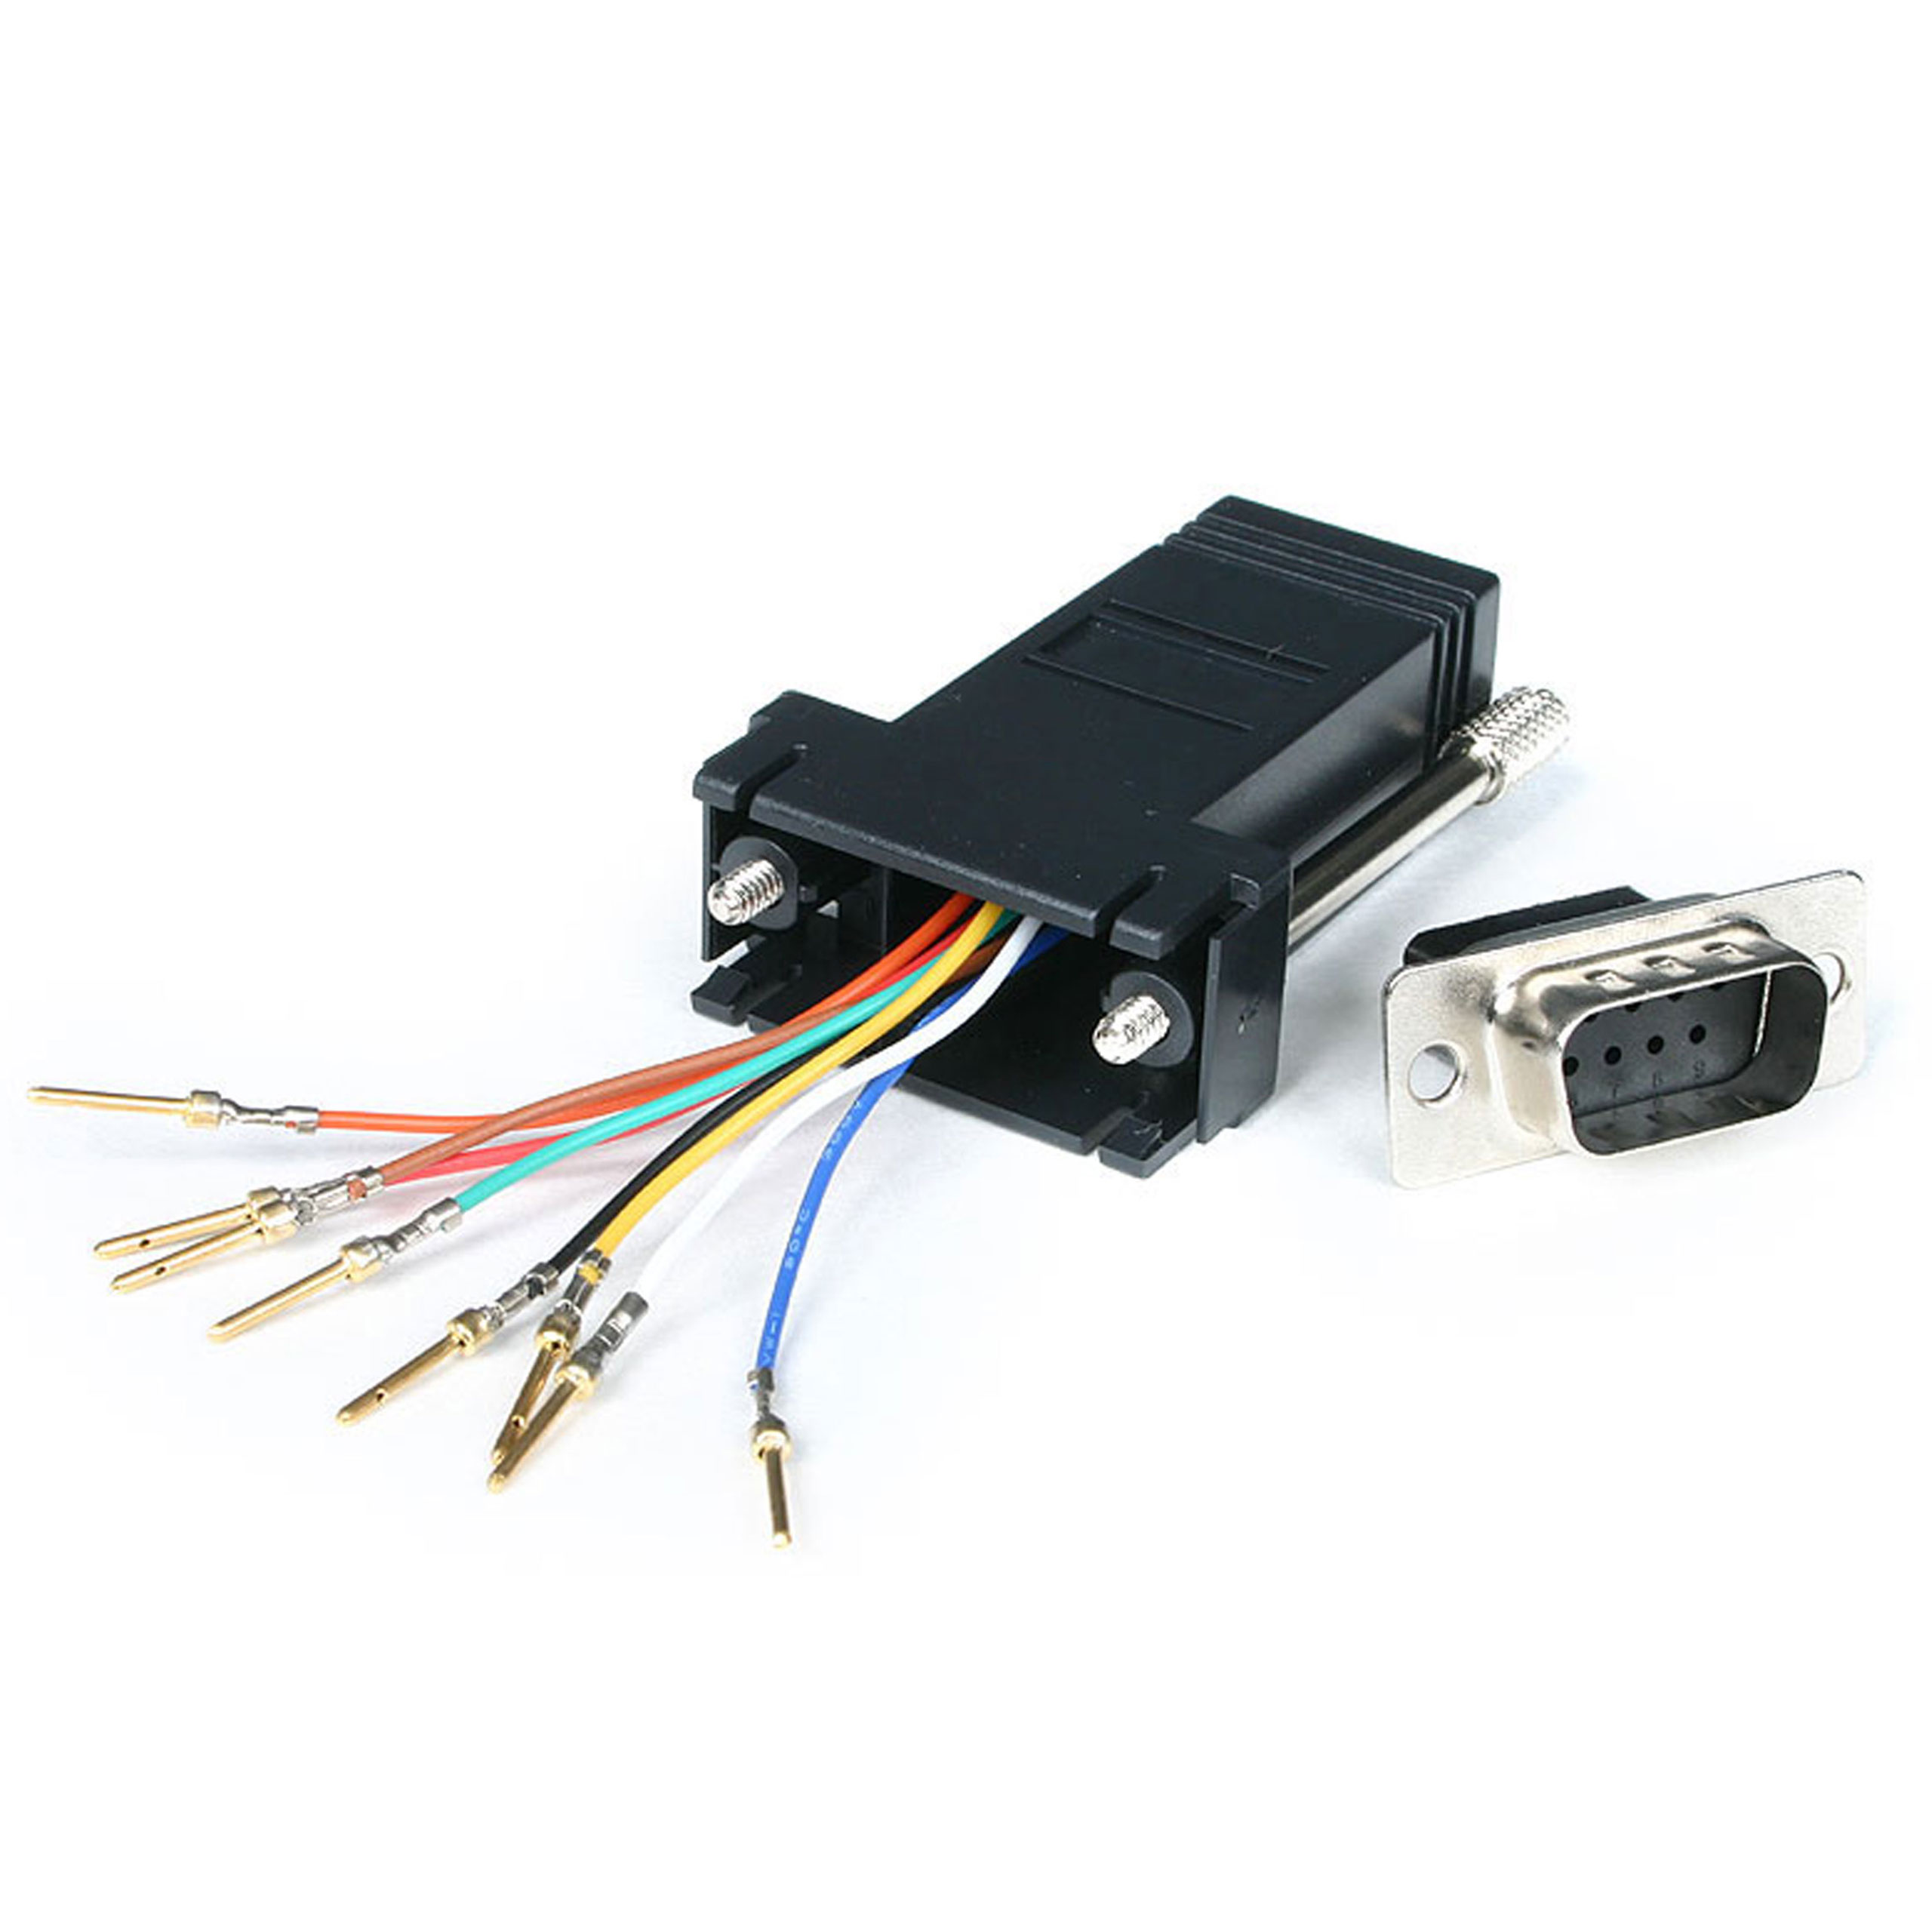 Startechcom Db9 To Rj45 Modular Serial Adapter Black Gc98mf Pin Wiring Miscellaneous Cables